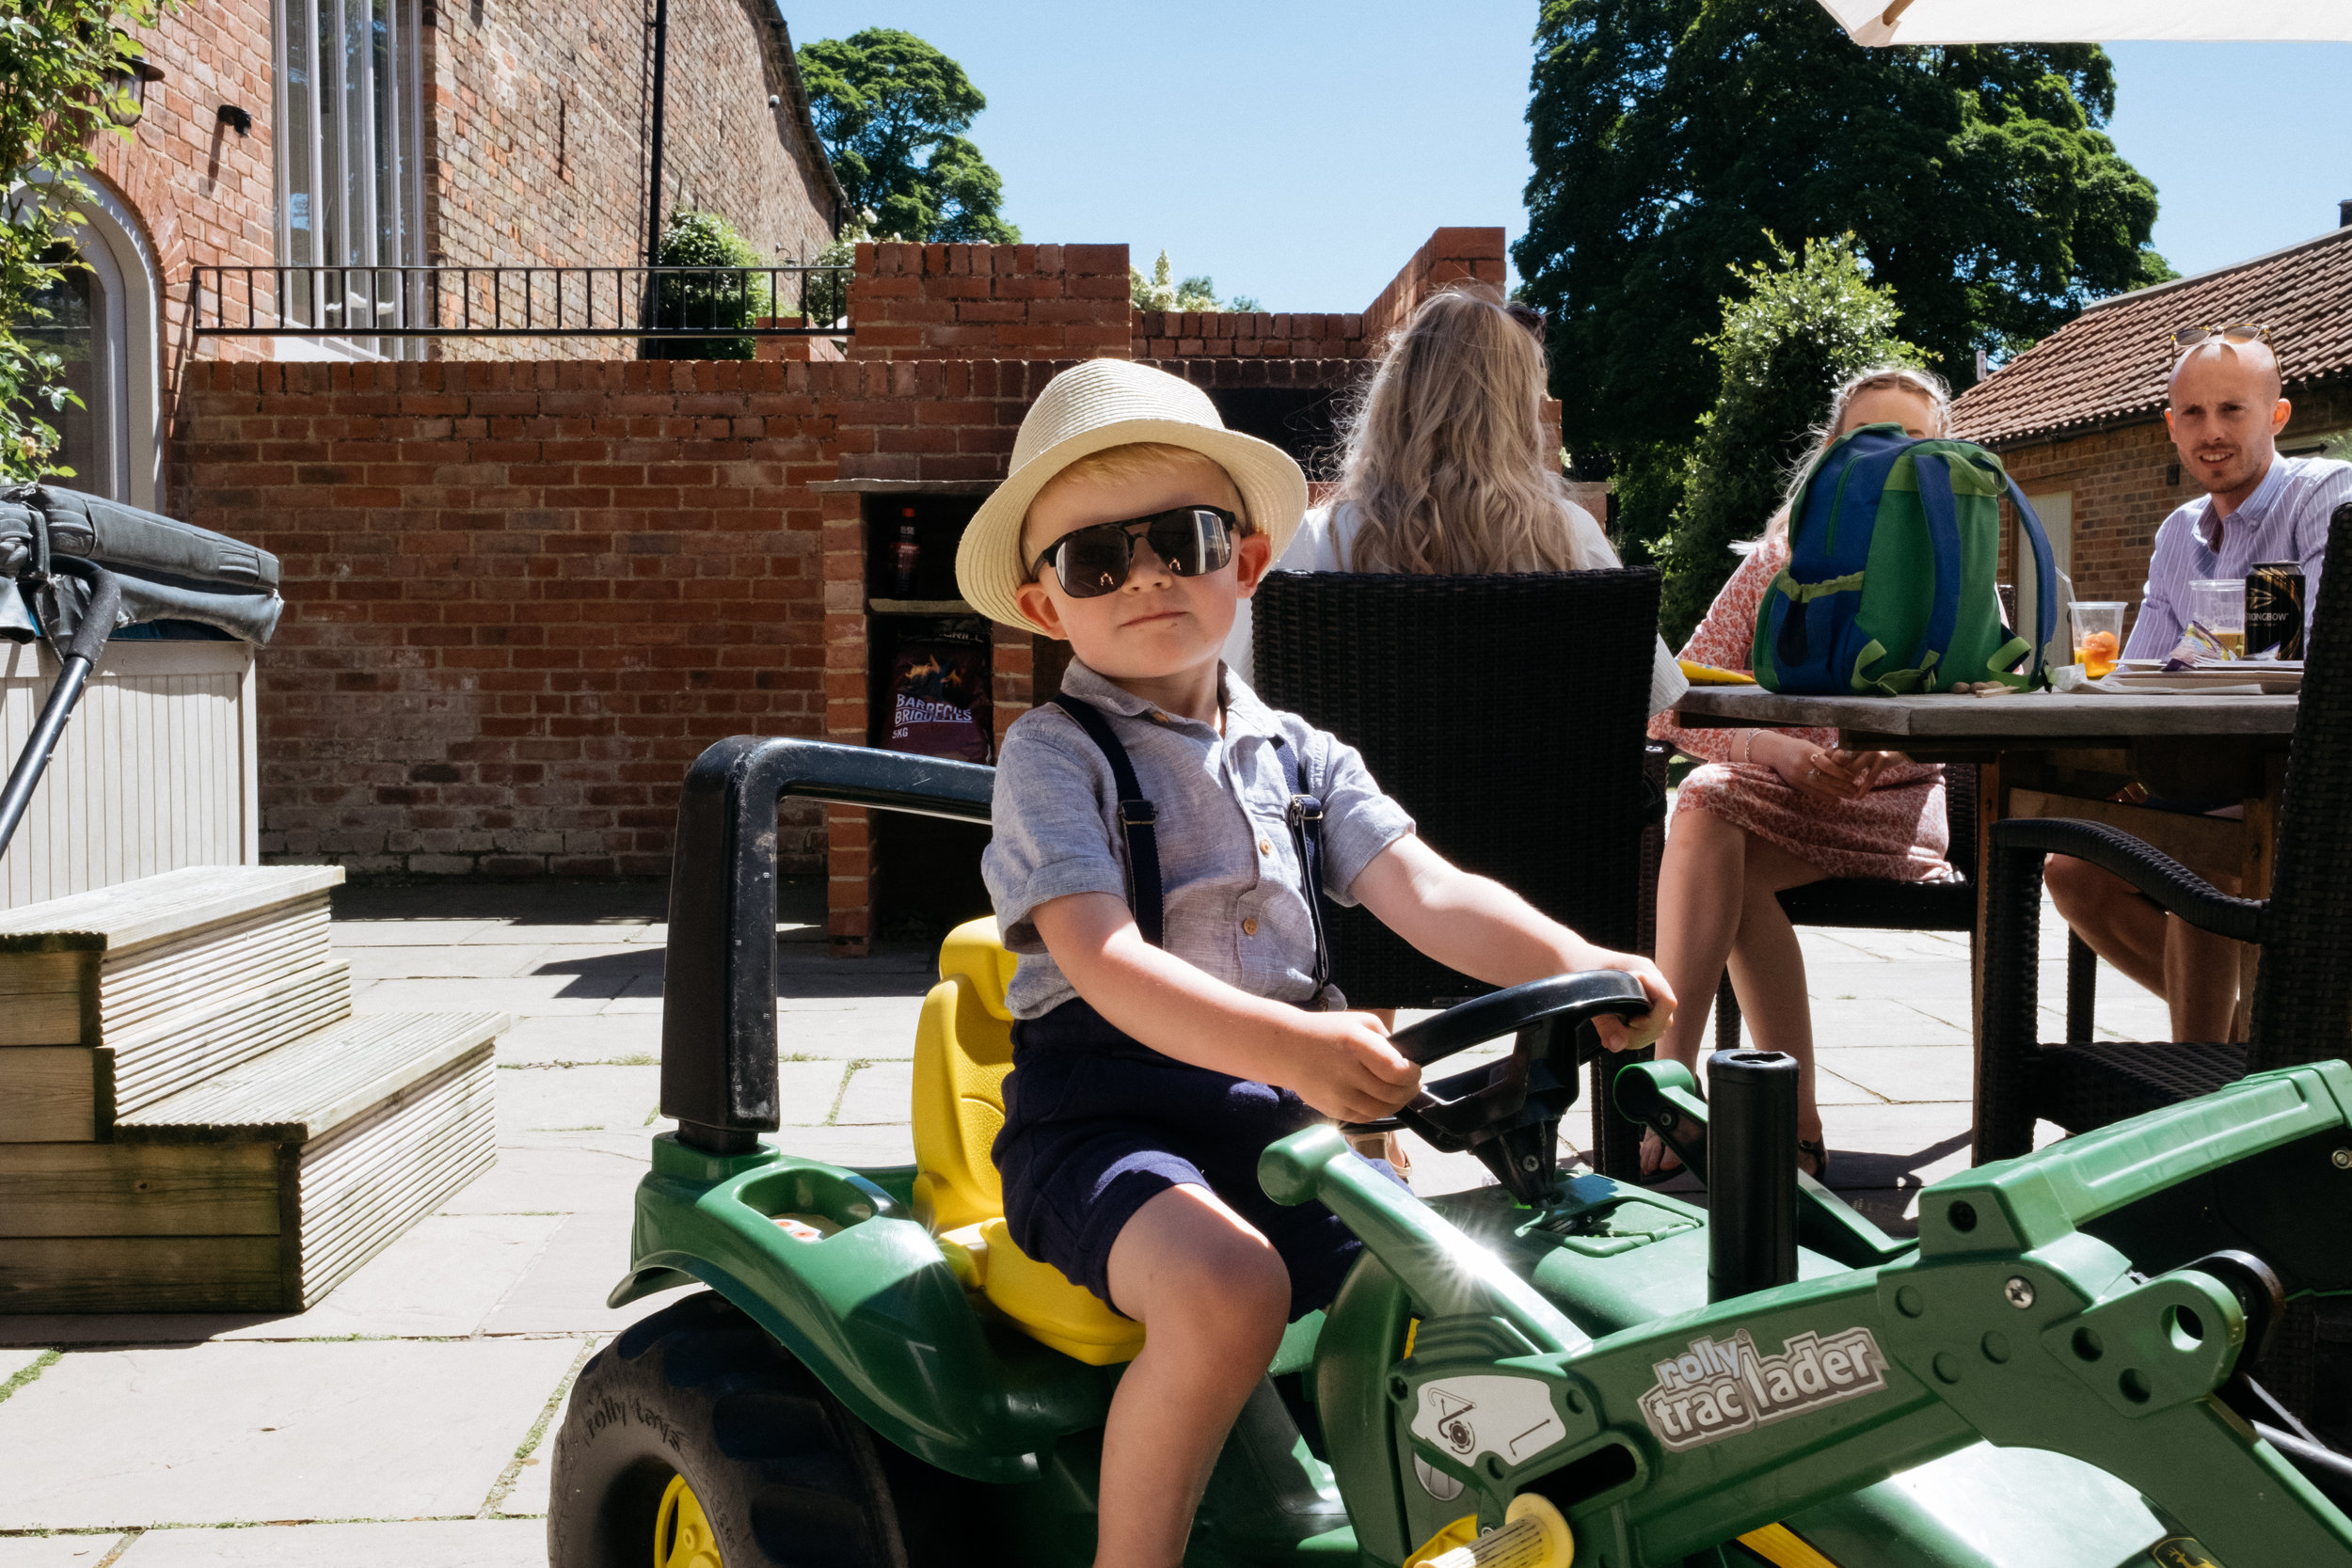 Young boy riding children's tractor wearing sunglasses